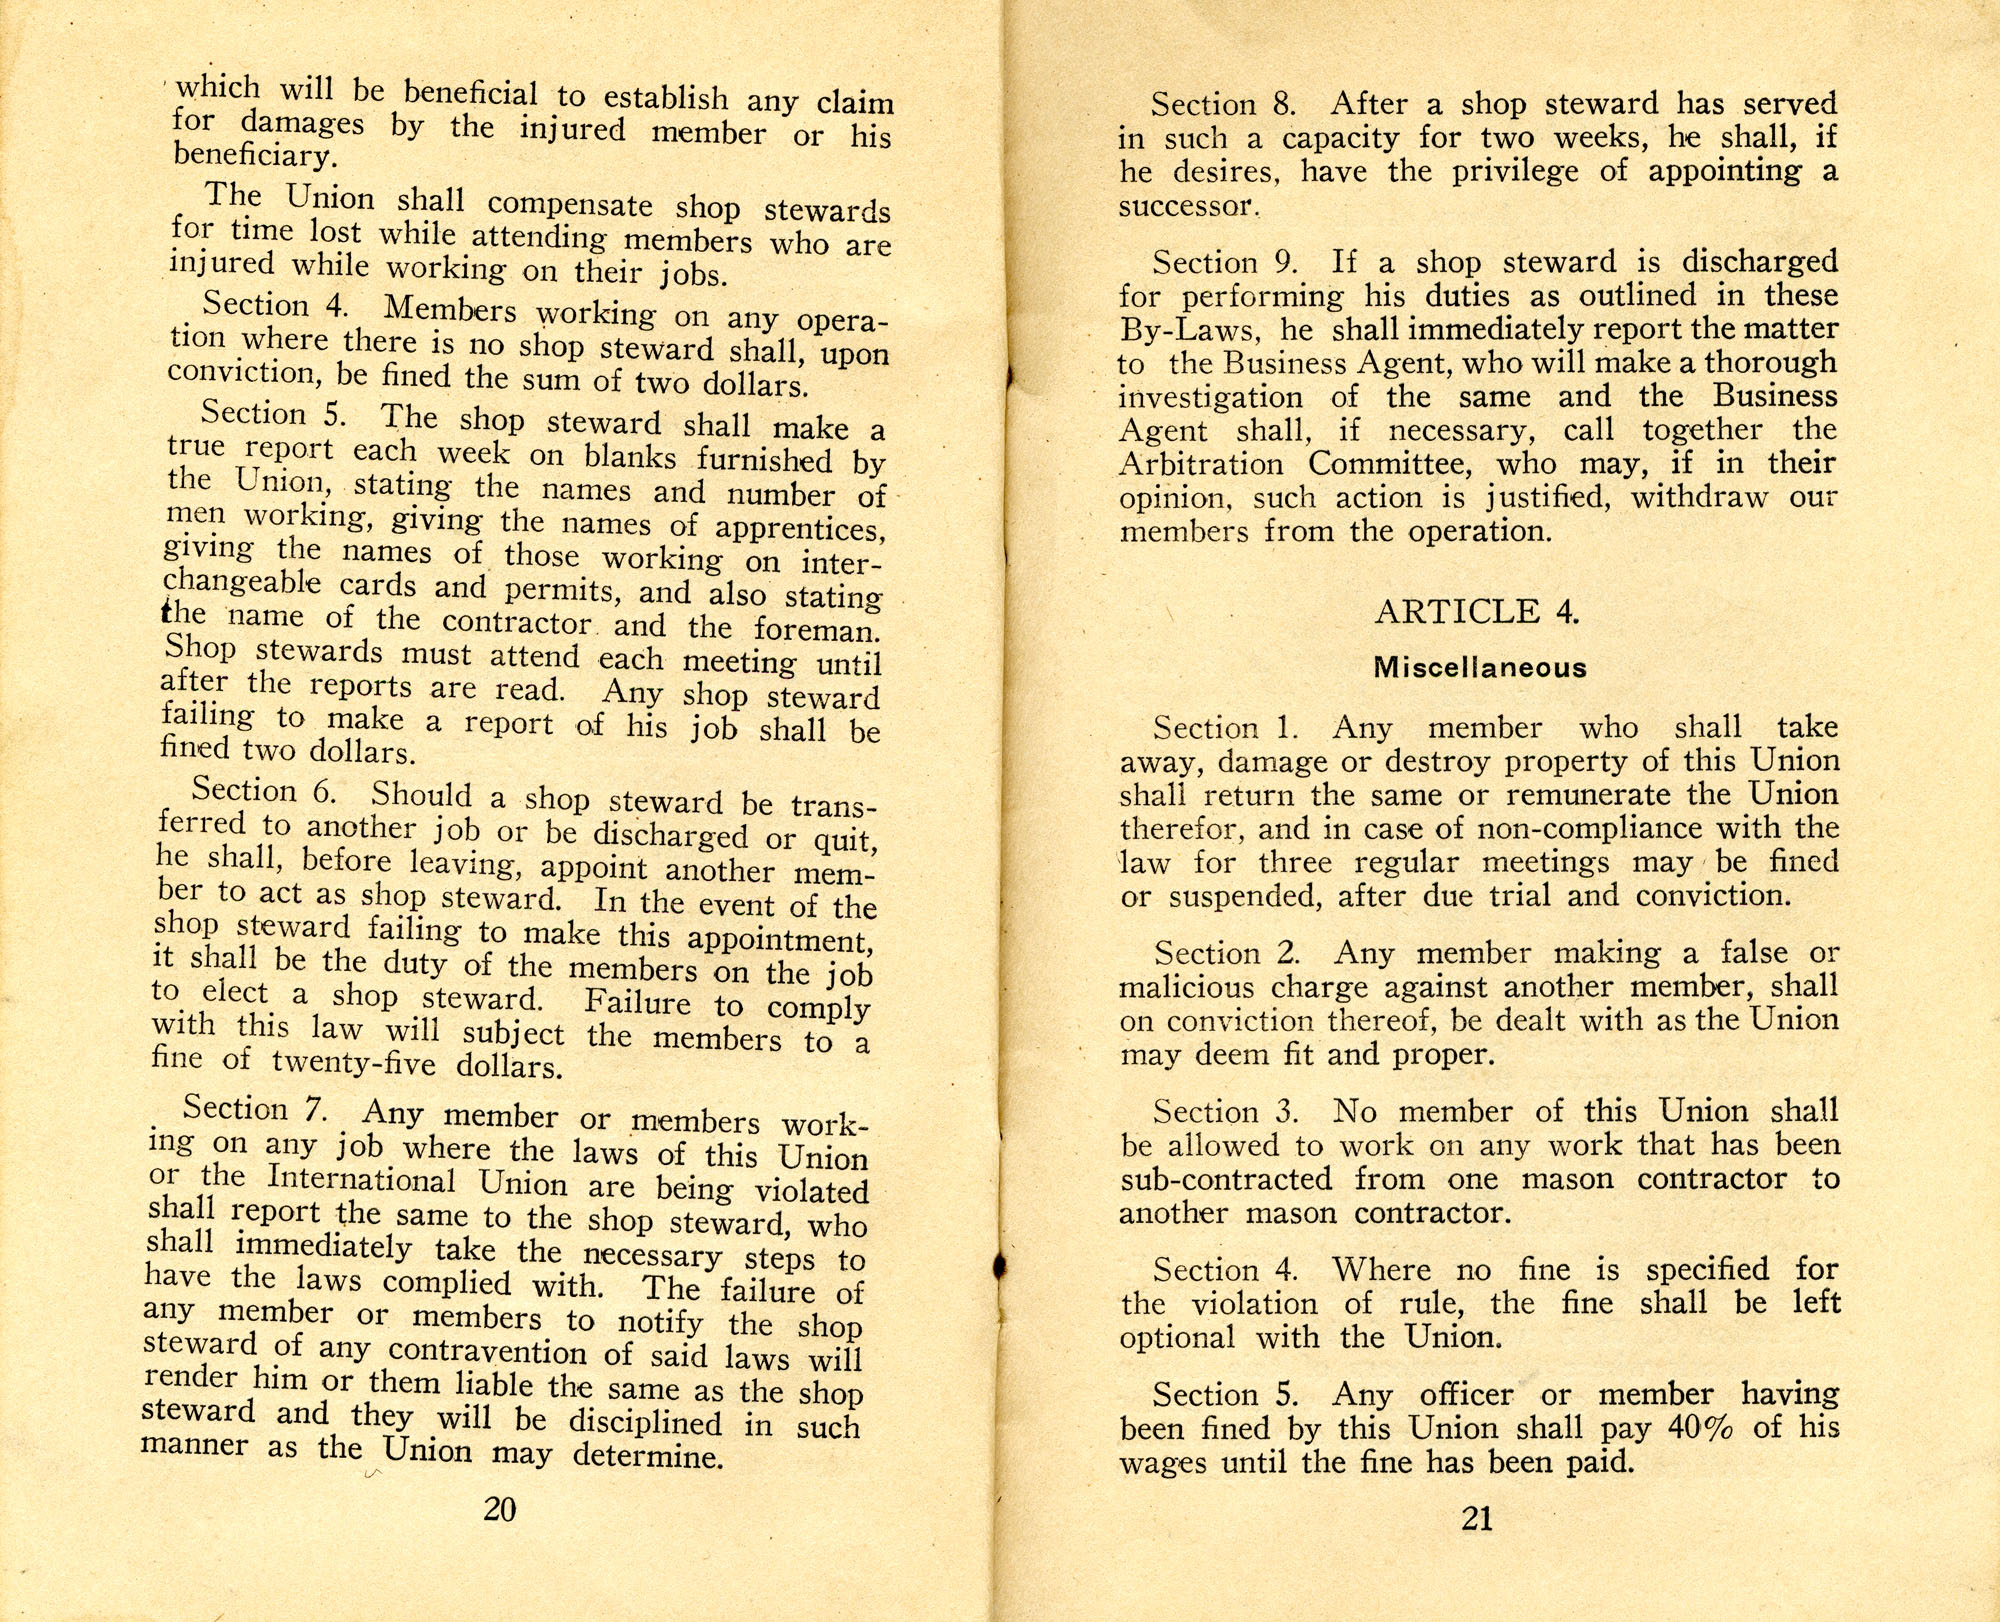 Constitution, by-laws, working code and rules of order, Page 11